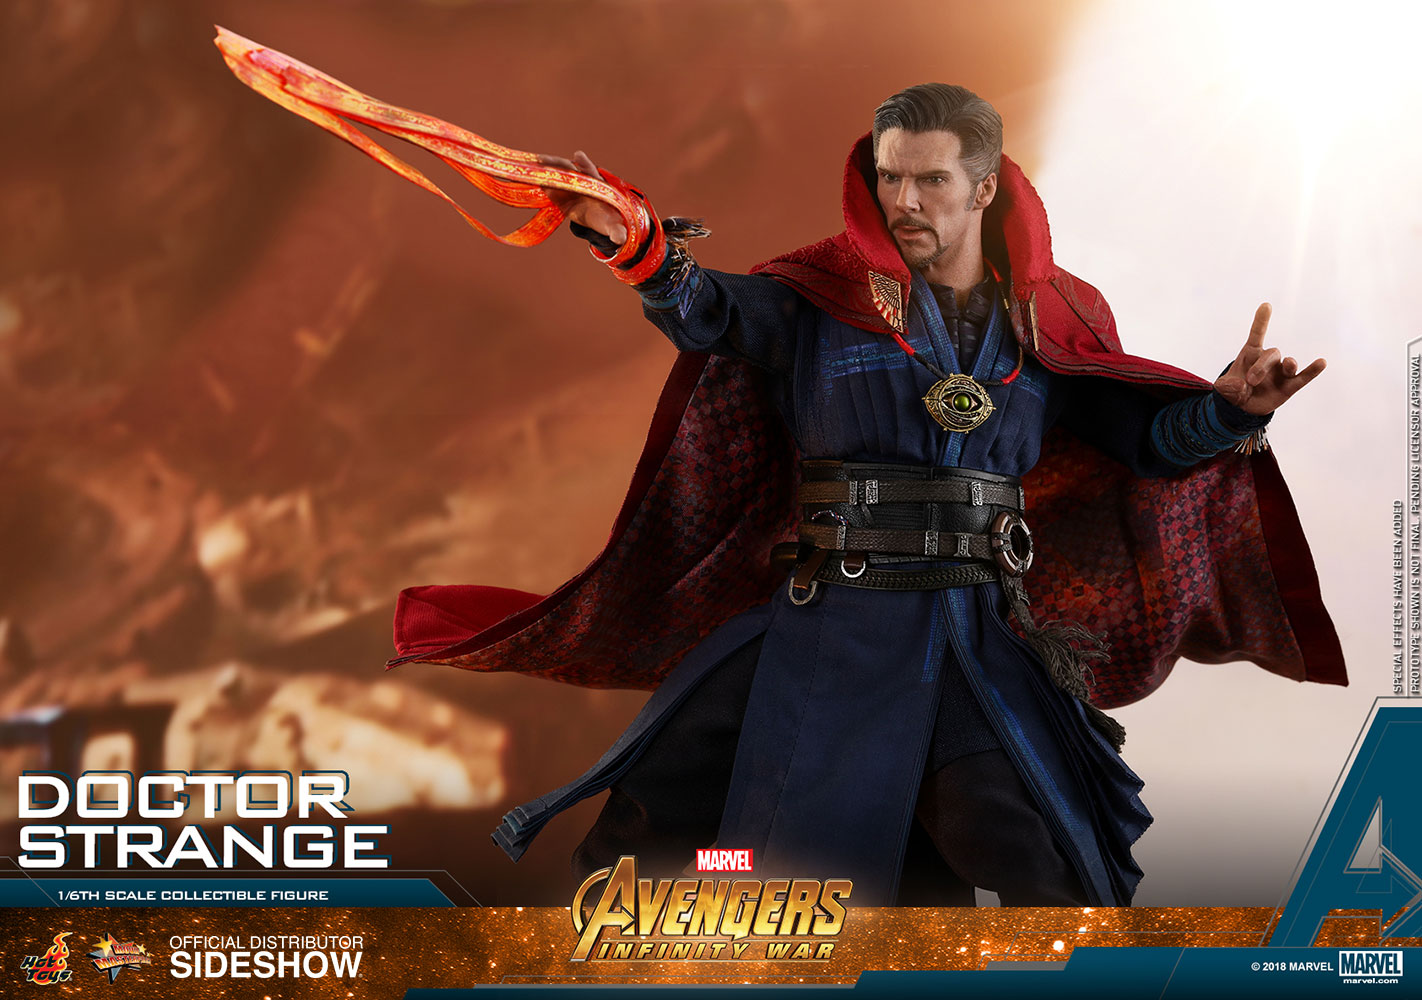 Toys & Hobbies Hard-Working The Avengers Super Hero Marvel Doctor Strange Iron Studios Figure Action Pvc Collectible Model Toy Fashionable Patterns